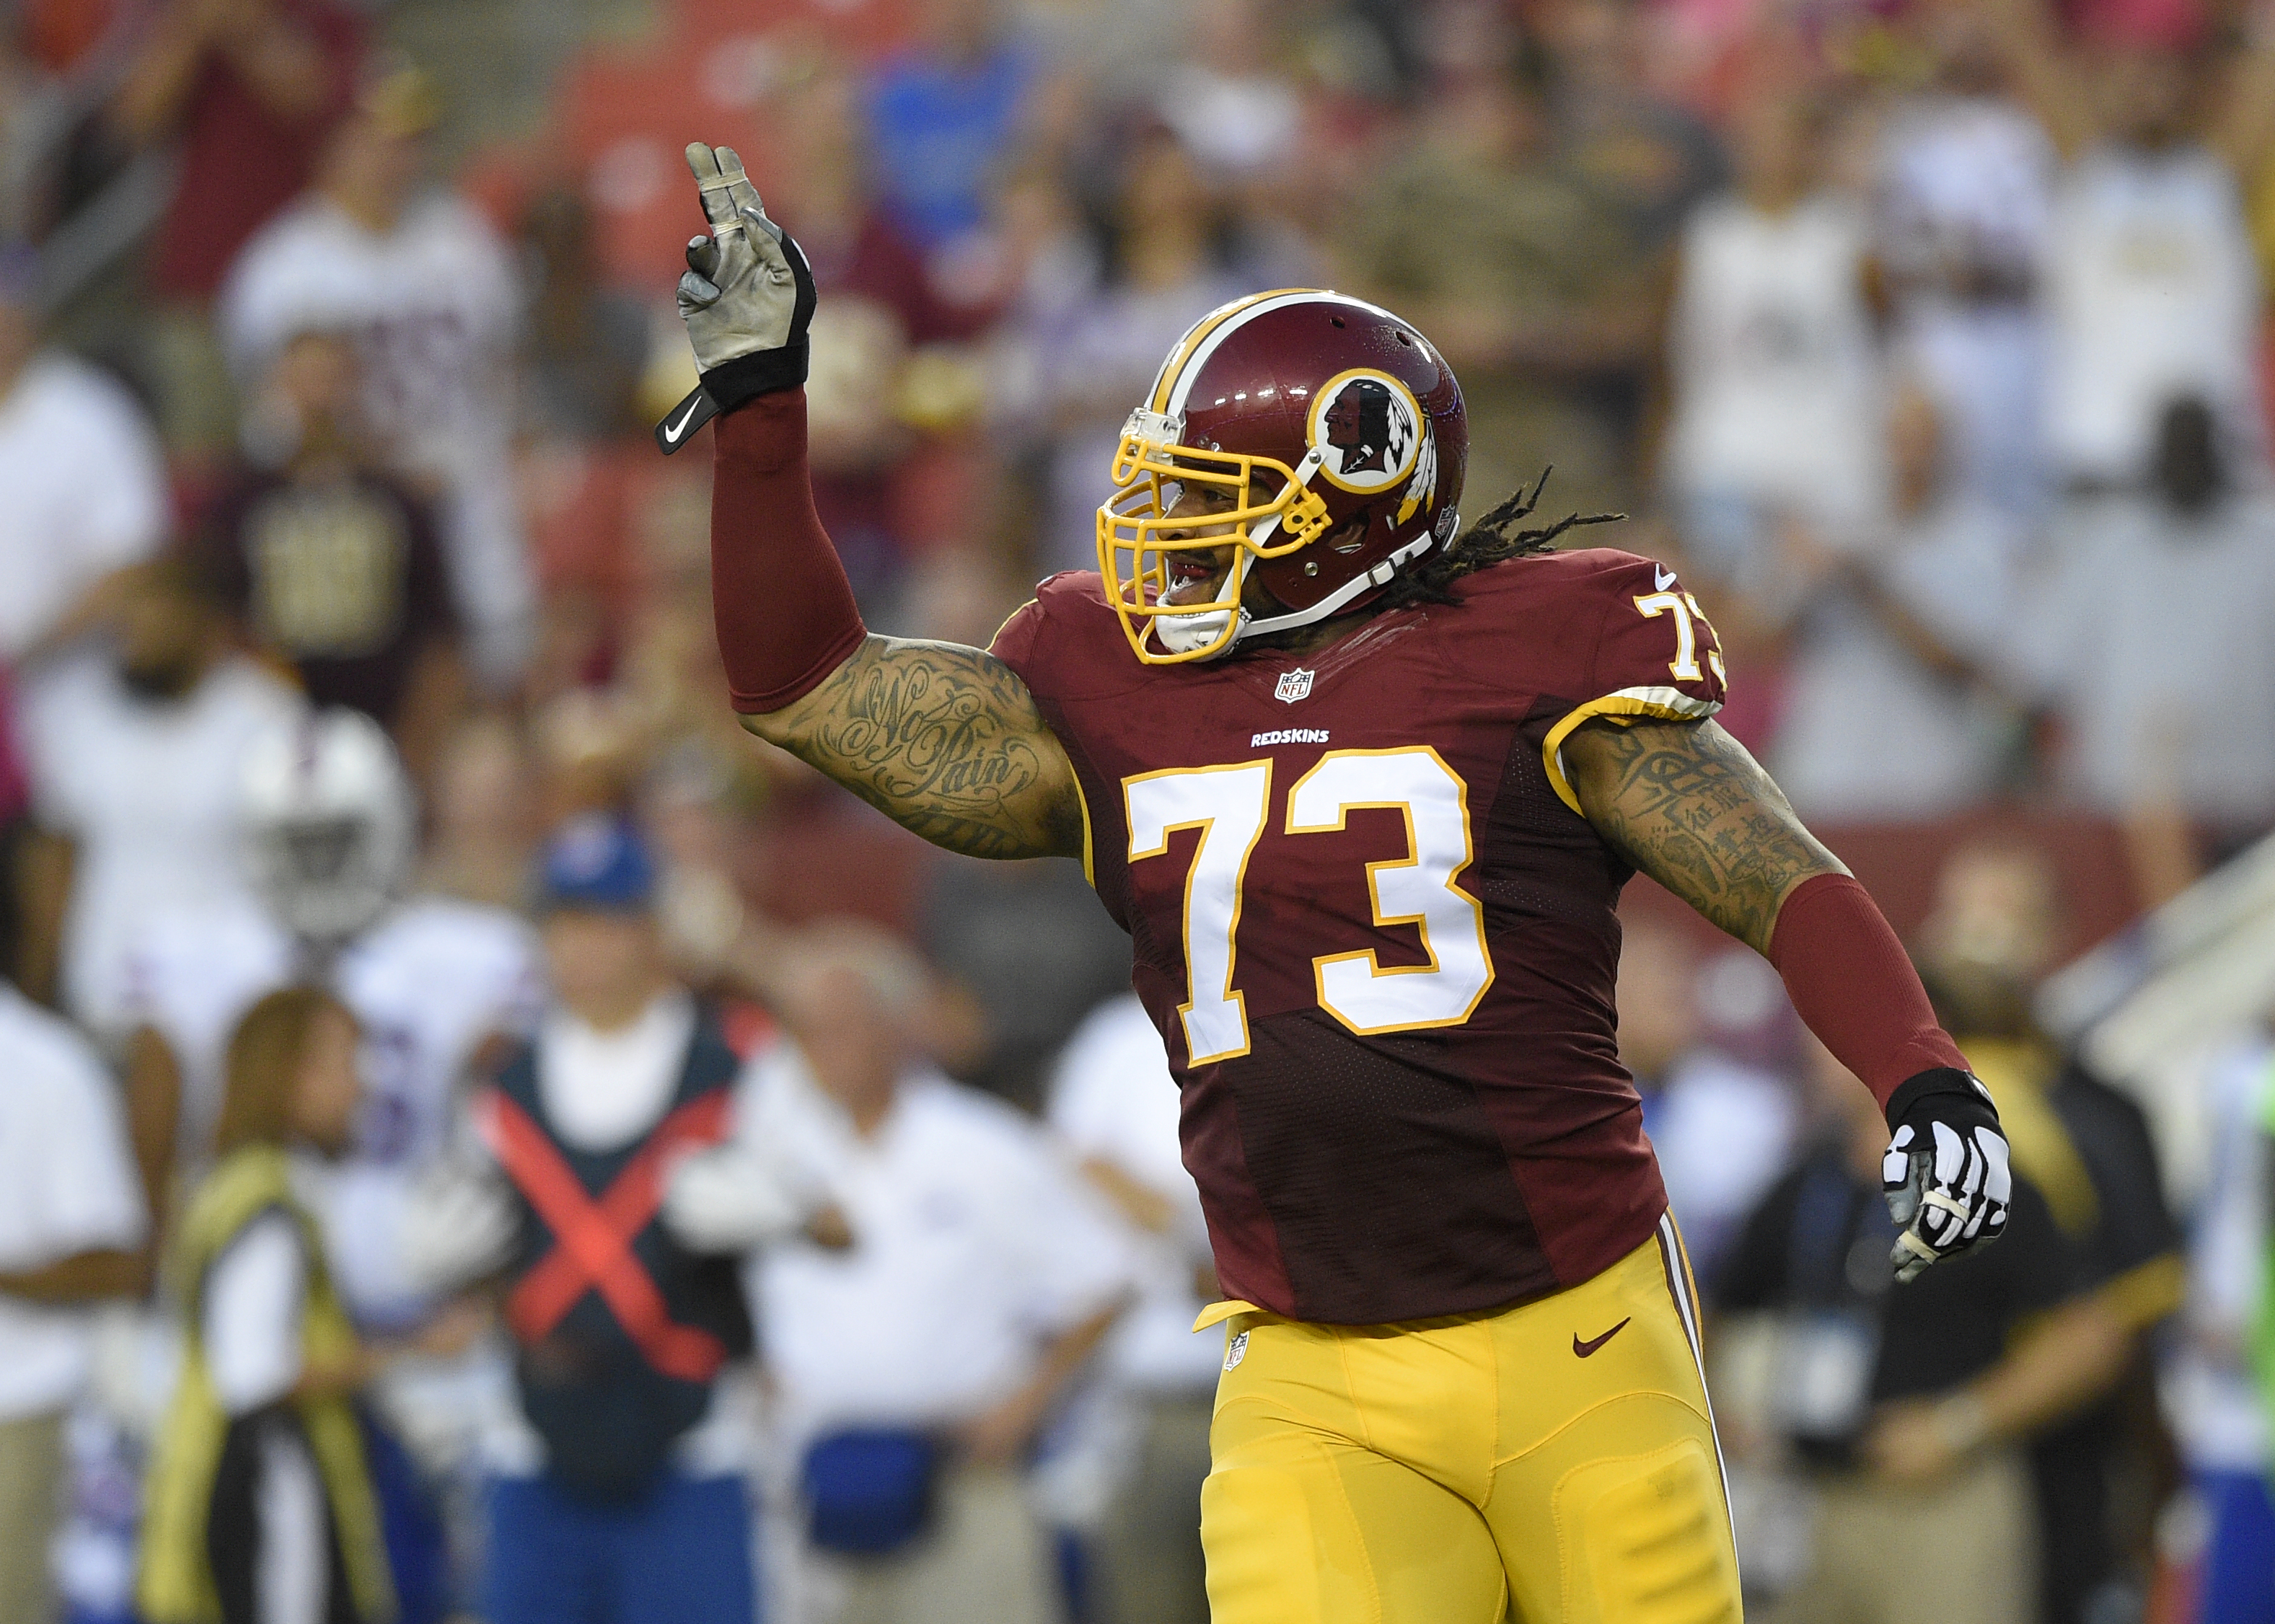 In this photo taken Aug. 26, 2016, Washington Redskins defensive end Ziggy Hood (73) reacts during the first half of an NFL preseason football game against the Buffalo Bills, in Landover, Md. A first-round pick of the Pittsburgh Steelers in 2009, defensiv